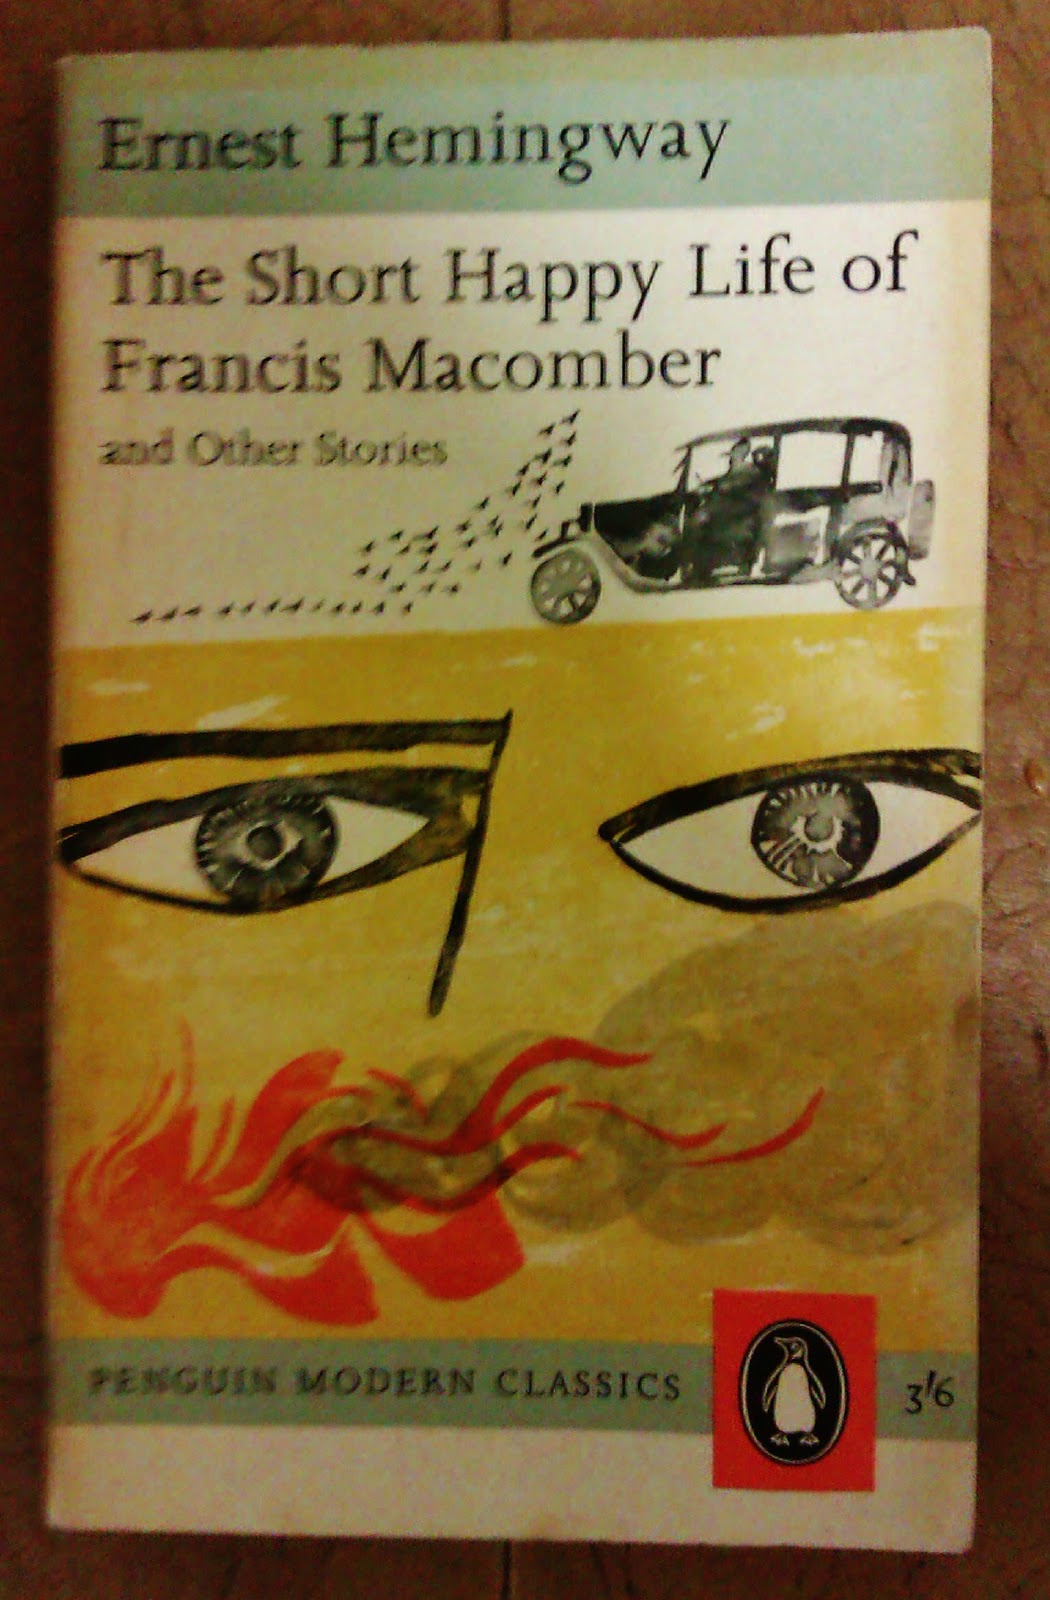 essay for the short happy life of francis macomber The short happy life of francis macomber essays: over 180,000 the short happy life of francis macomber essays, the short happy life of francis macomber term papers.